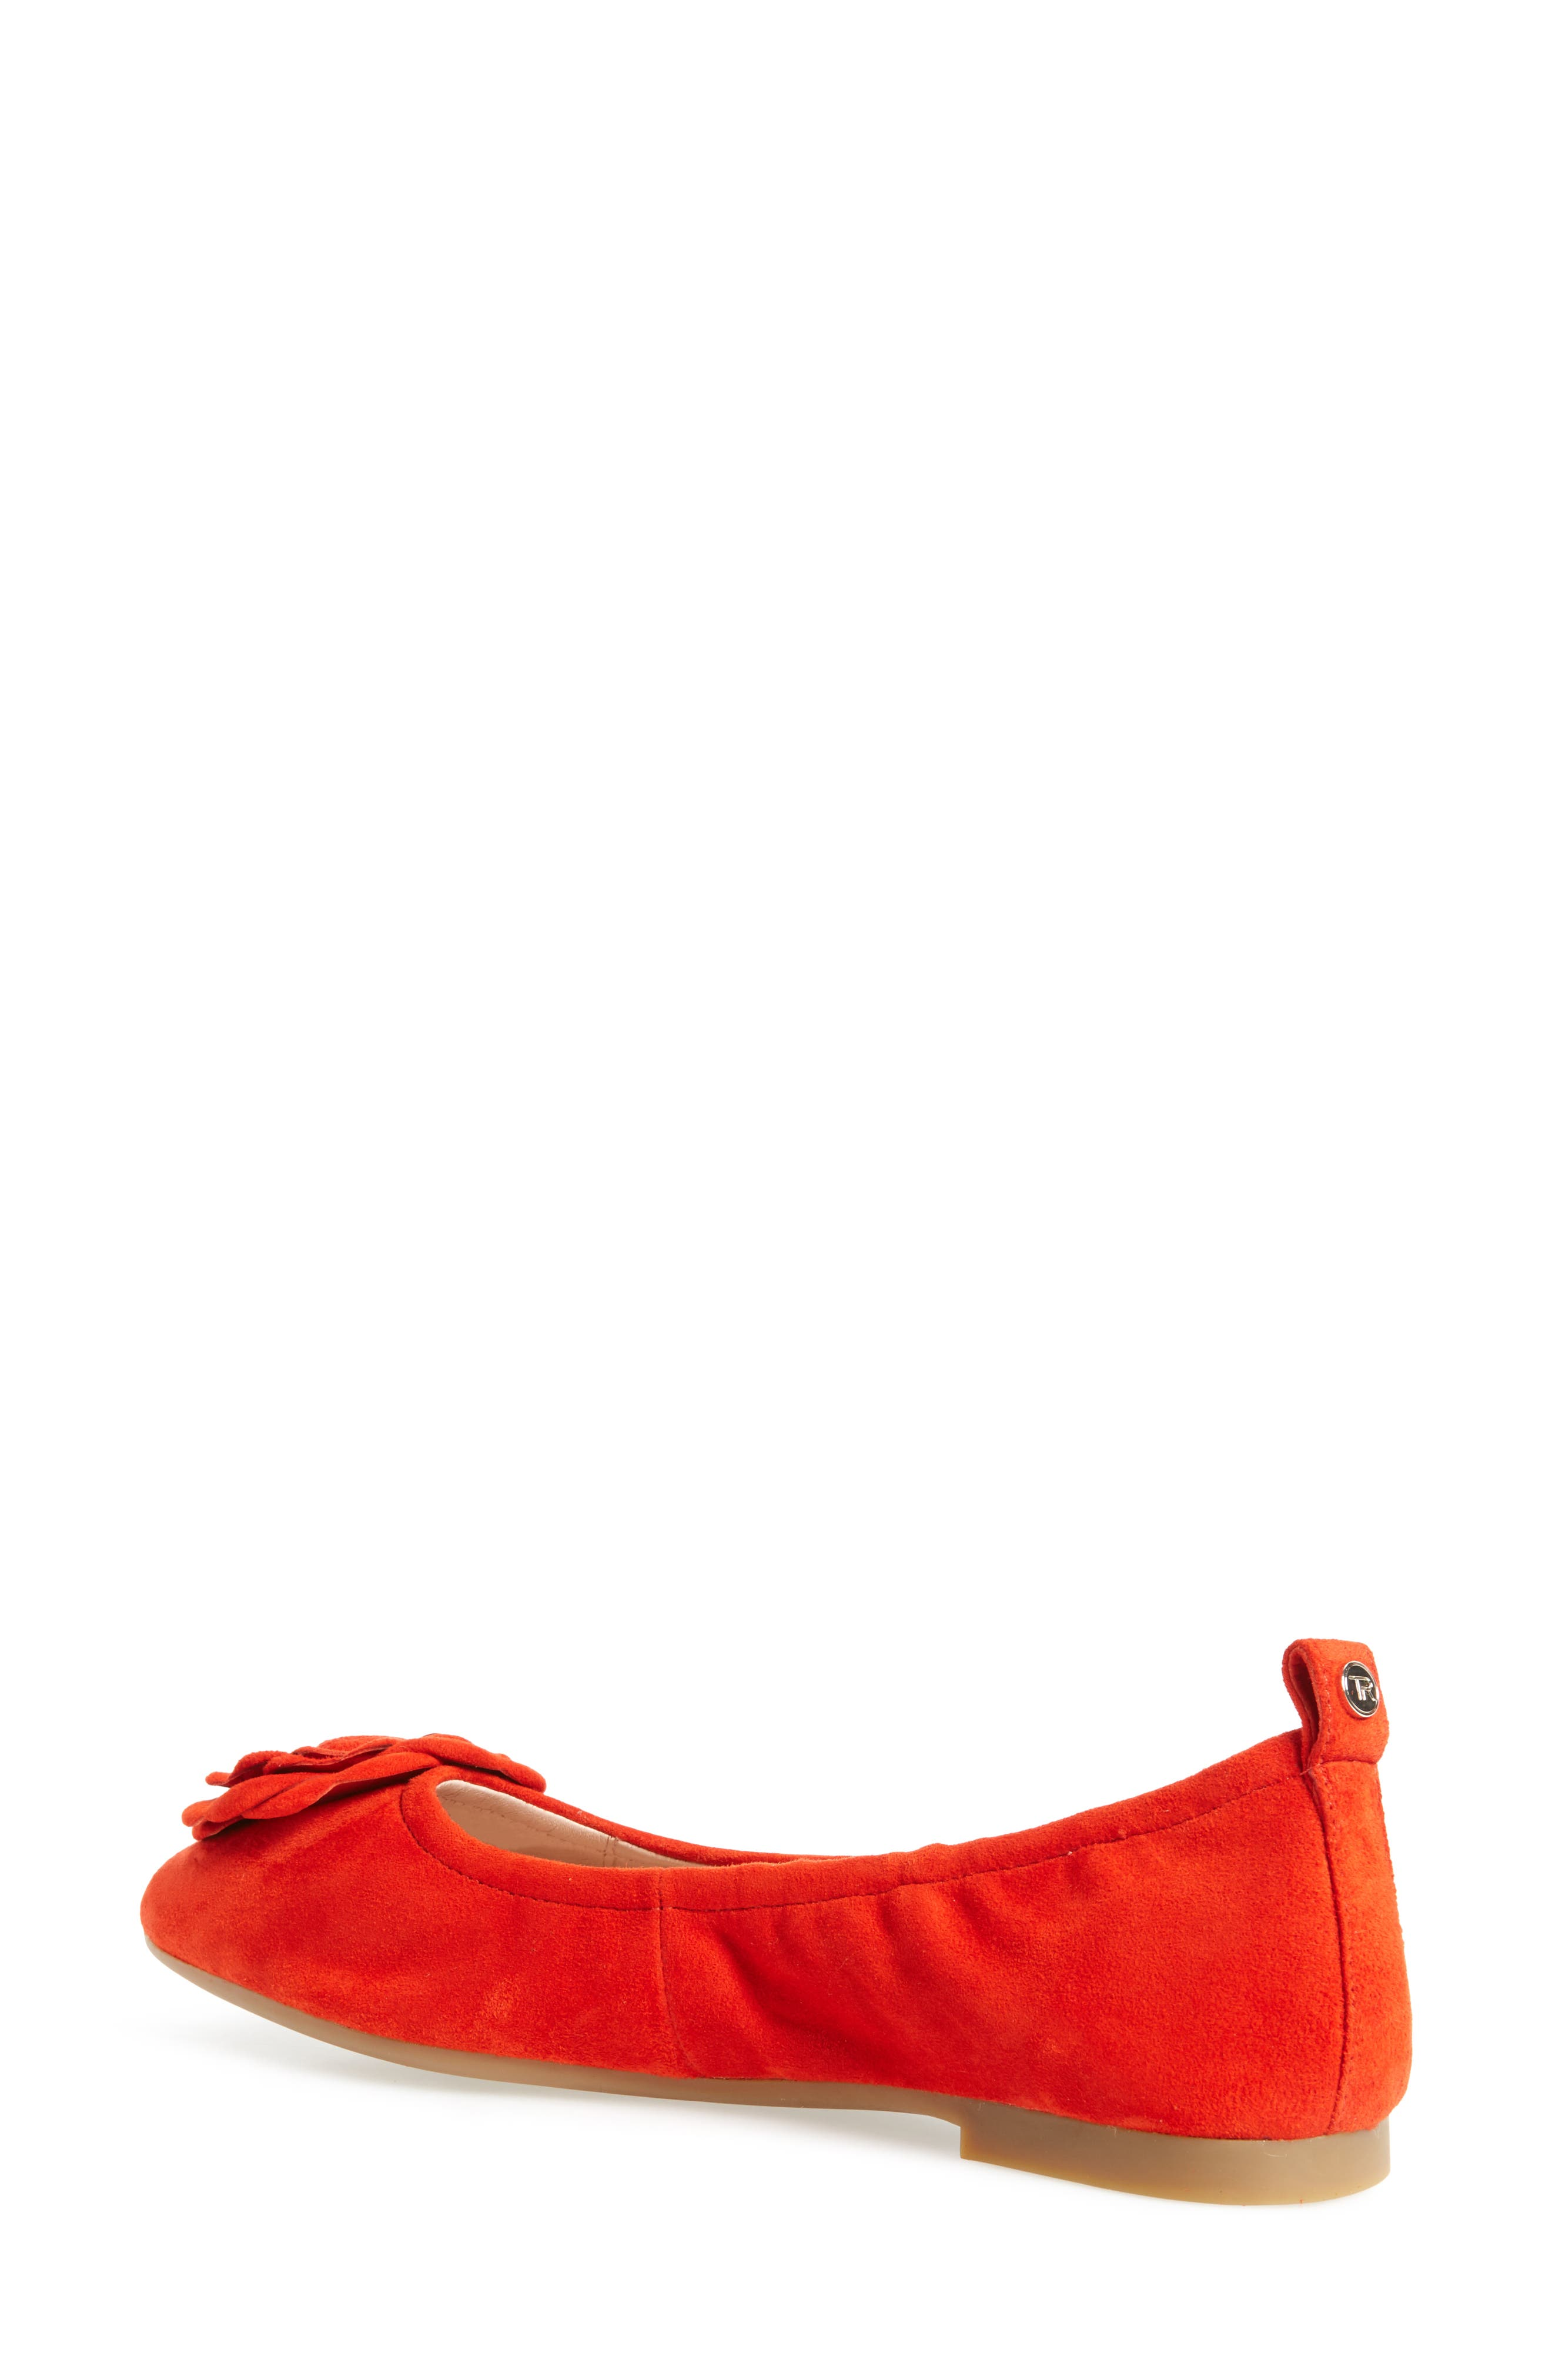 Rosalyn Ballet Flat,                             Alternate thumbnail 6, color,                             Spicy Suede